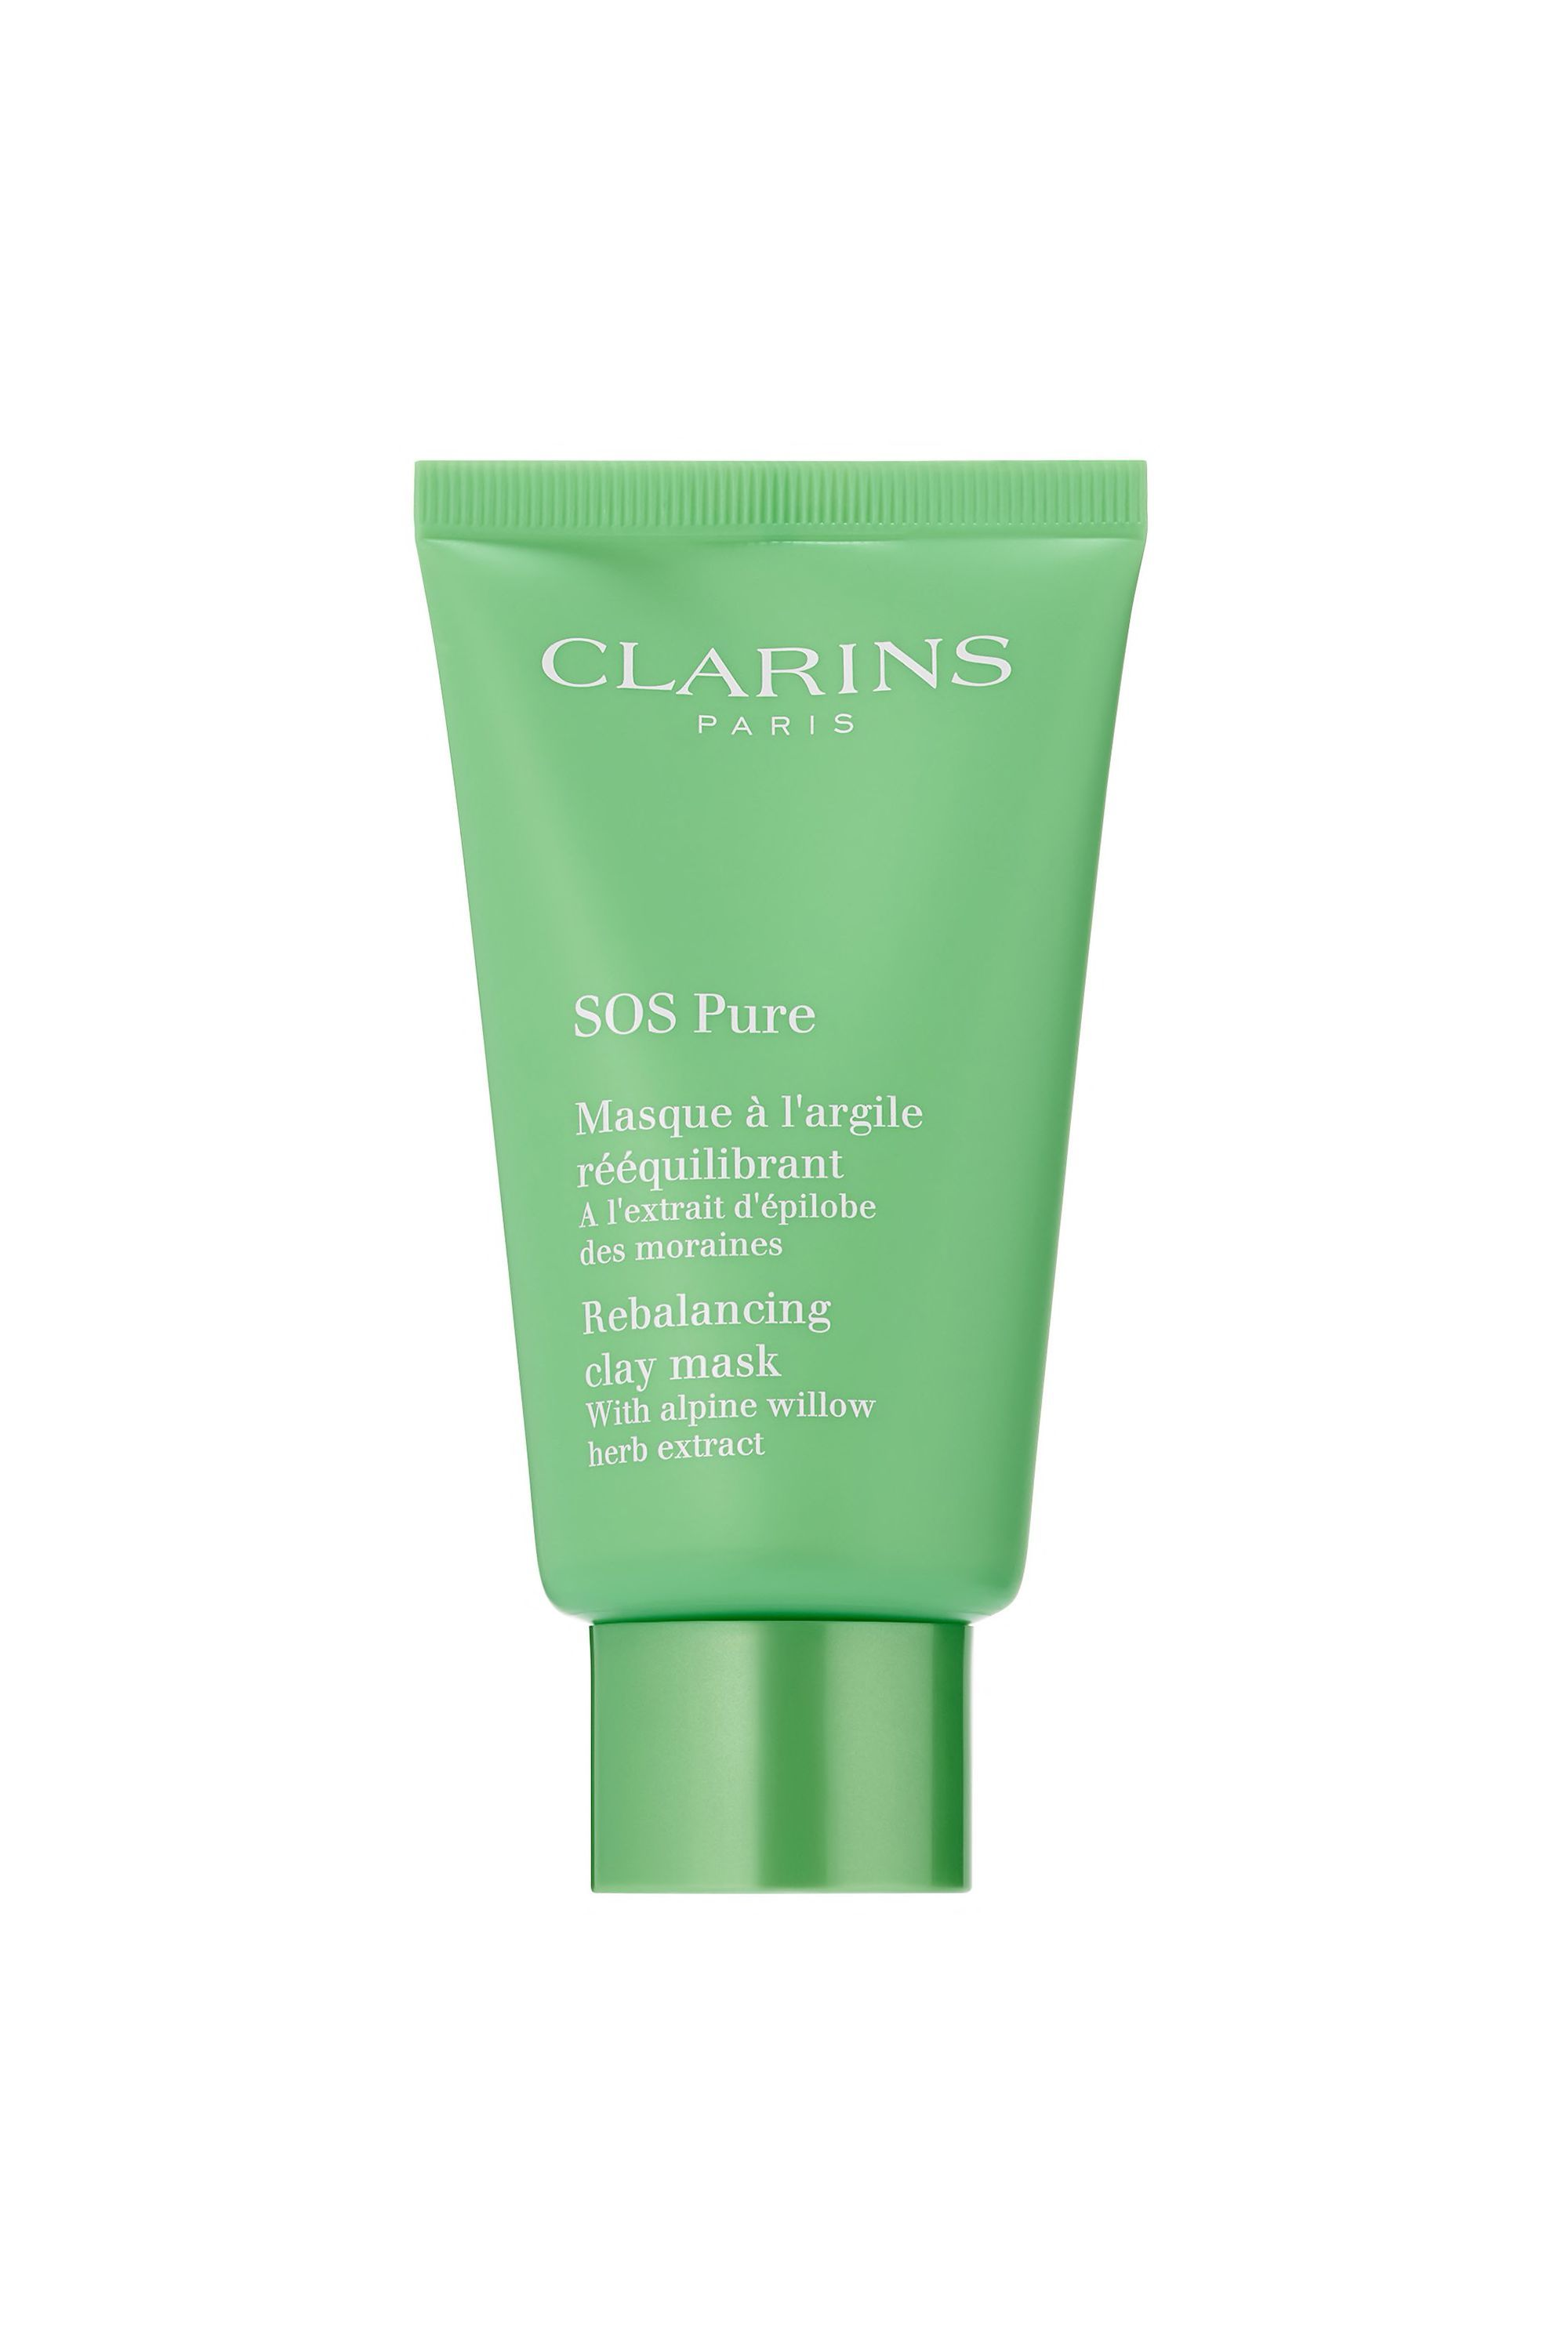 f369c30a89186 11 Best Clay Face Masks - Top Clay Face Masks for Acne